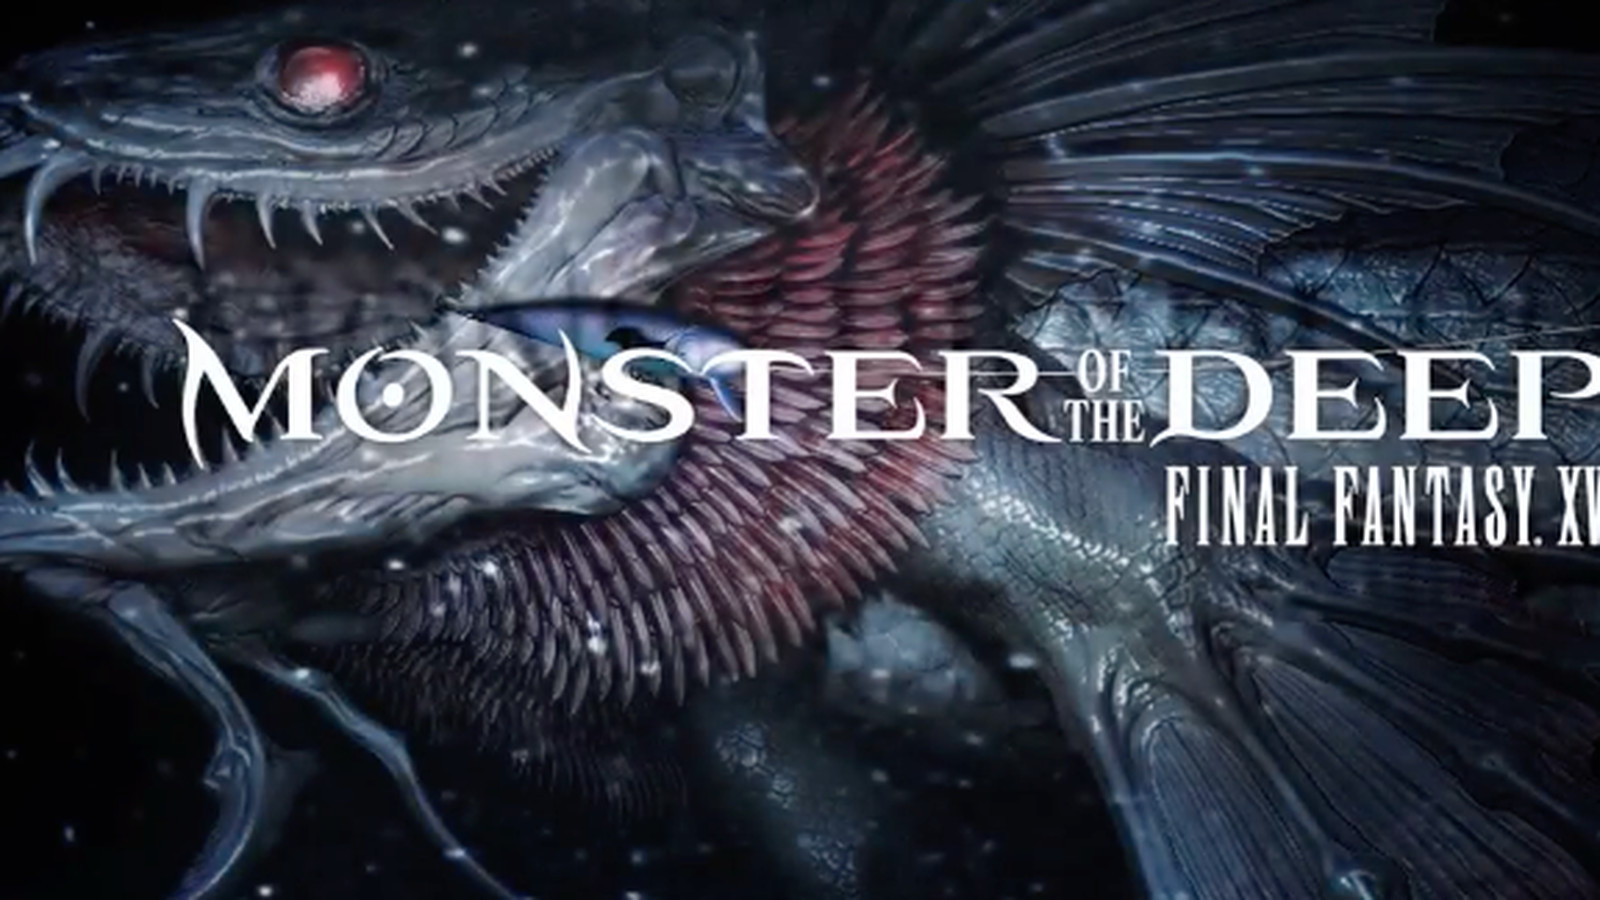 Final fantasy xv is getting a vr fishing spinoff the verge for Final fantasy 15 fishing